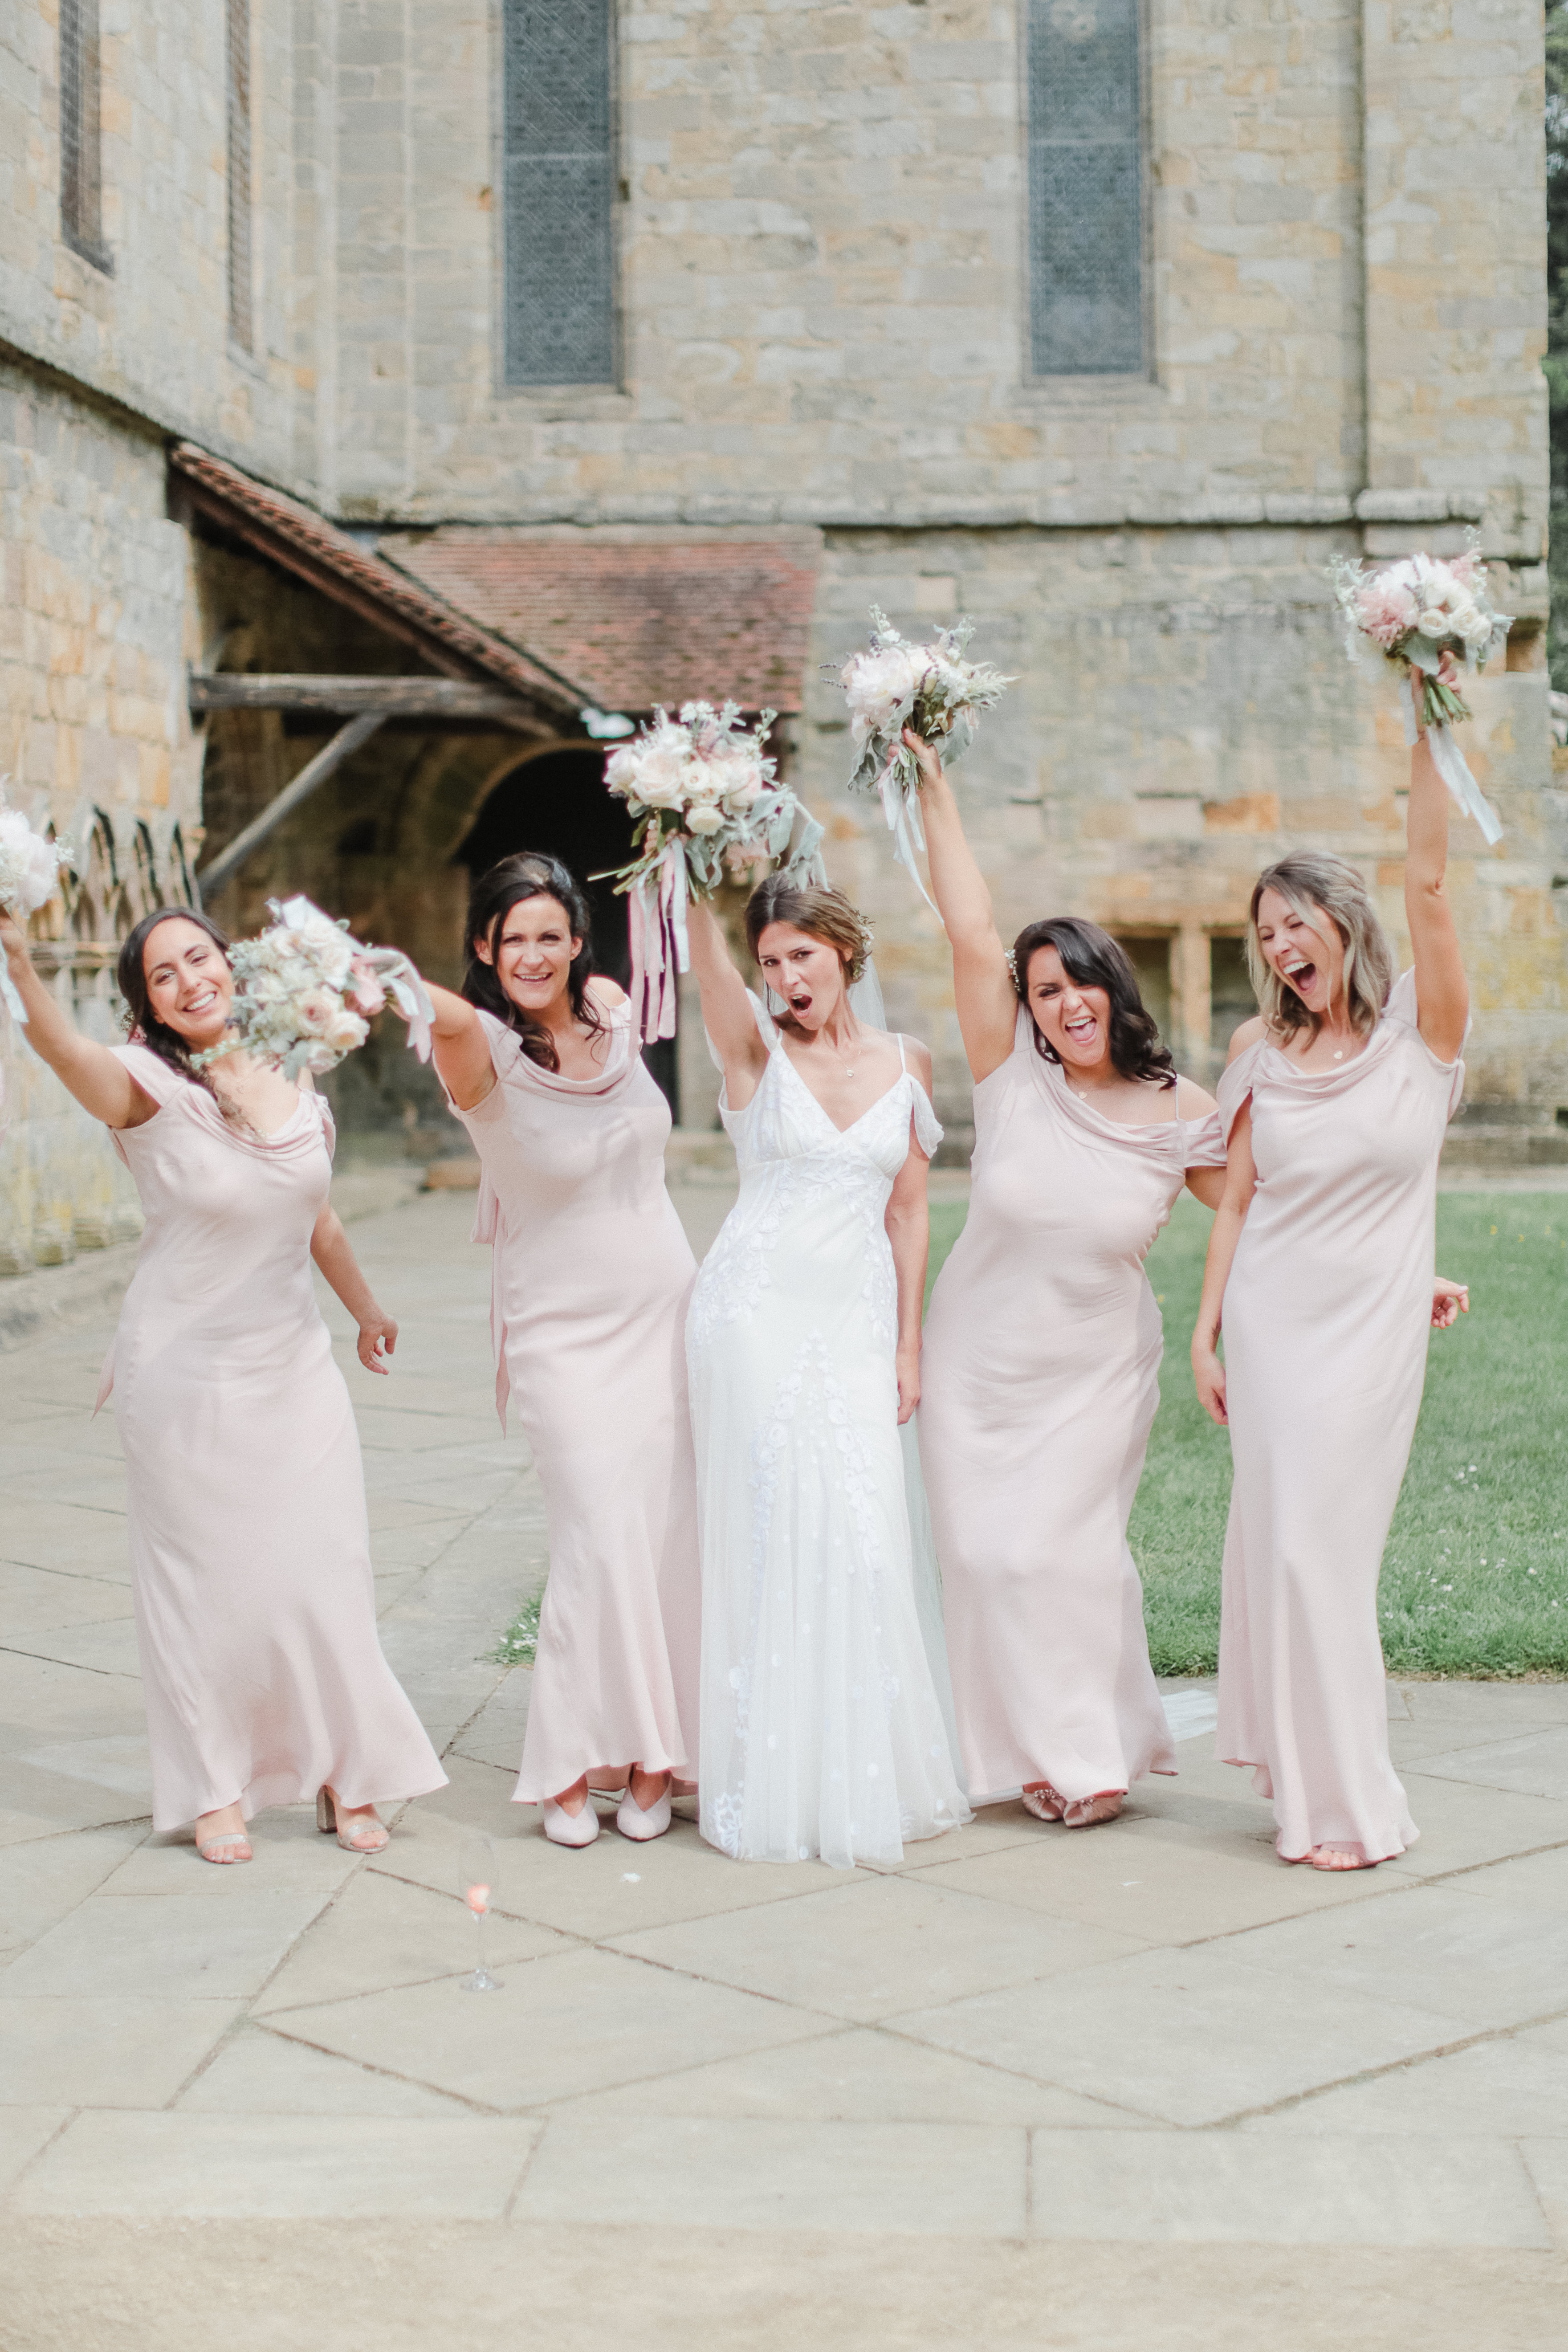 Brinkburn-Priory-Wedding-Photography